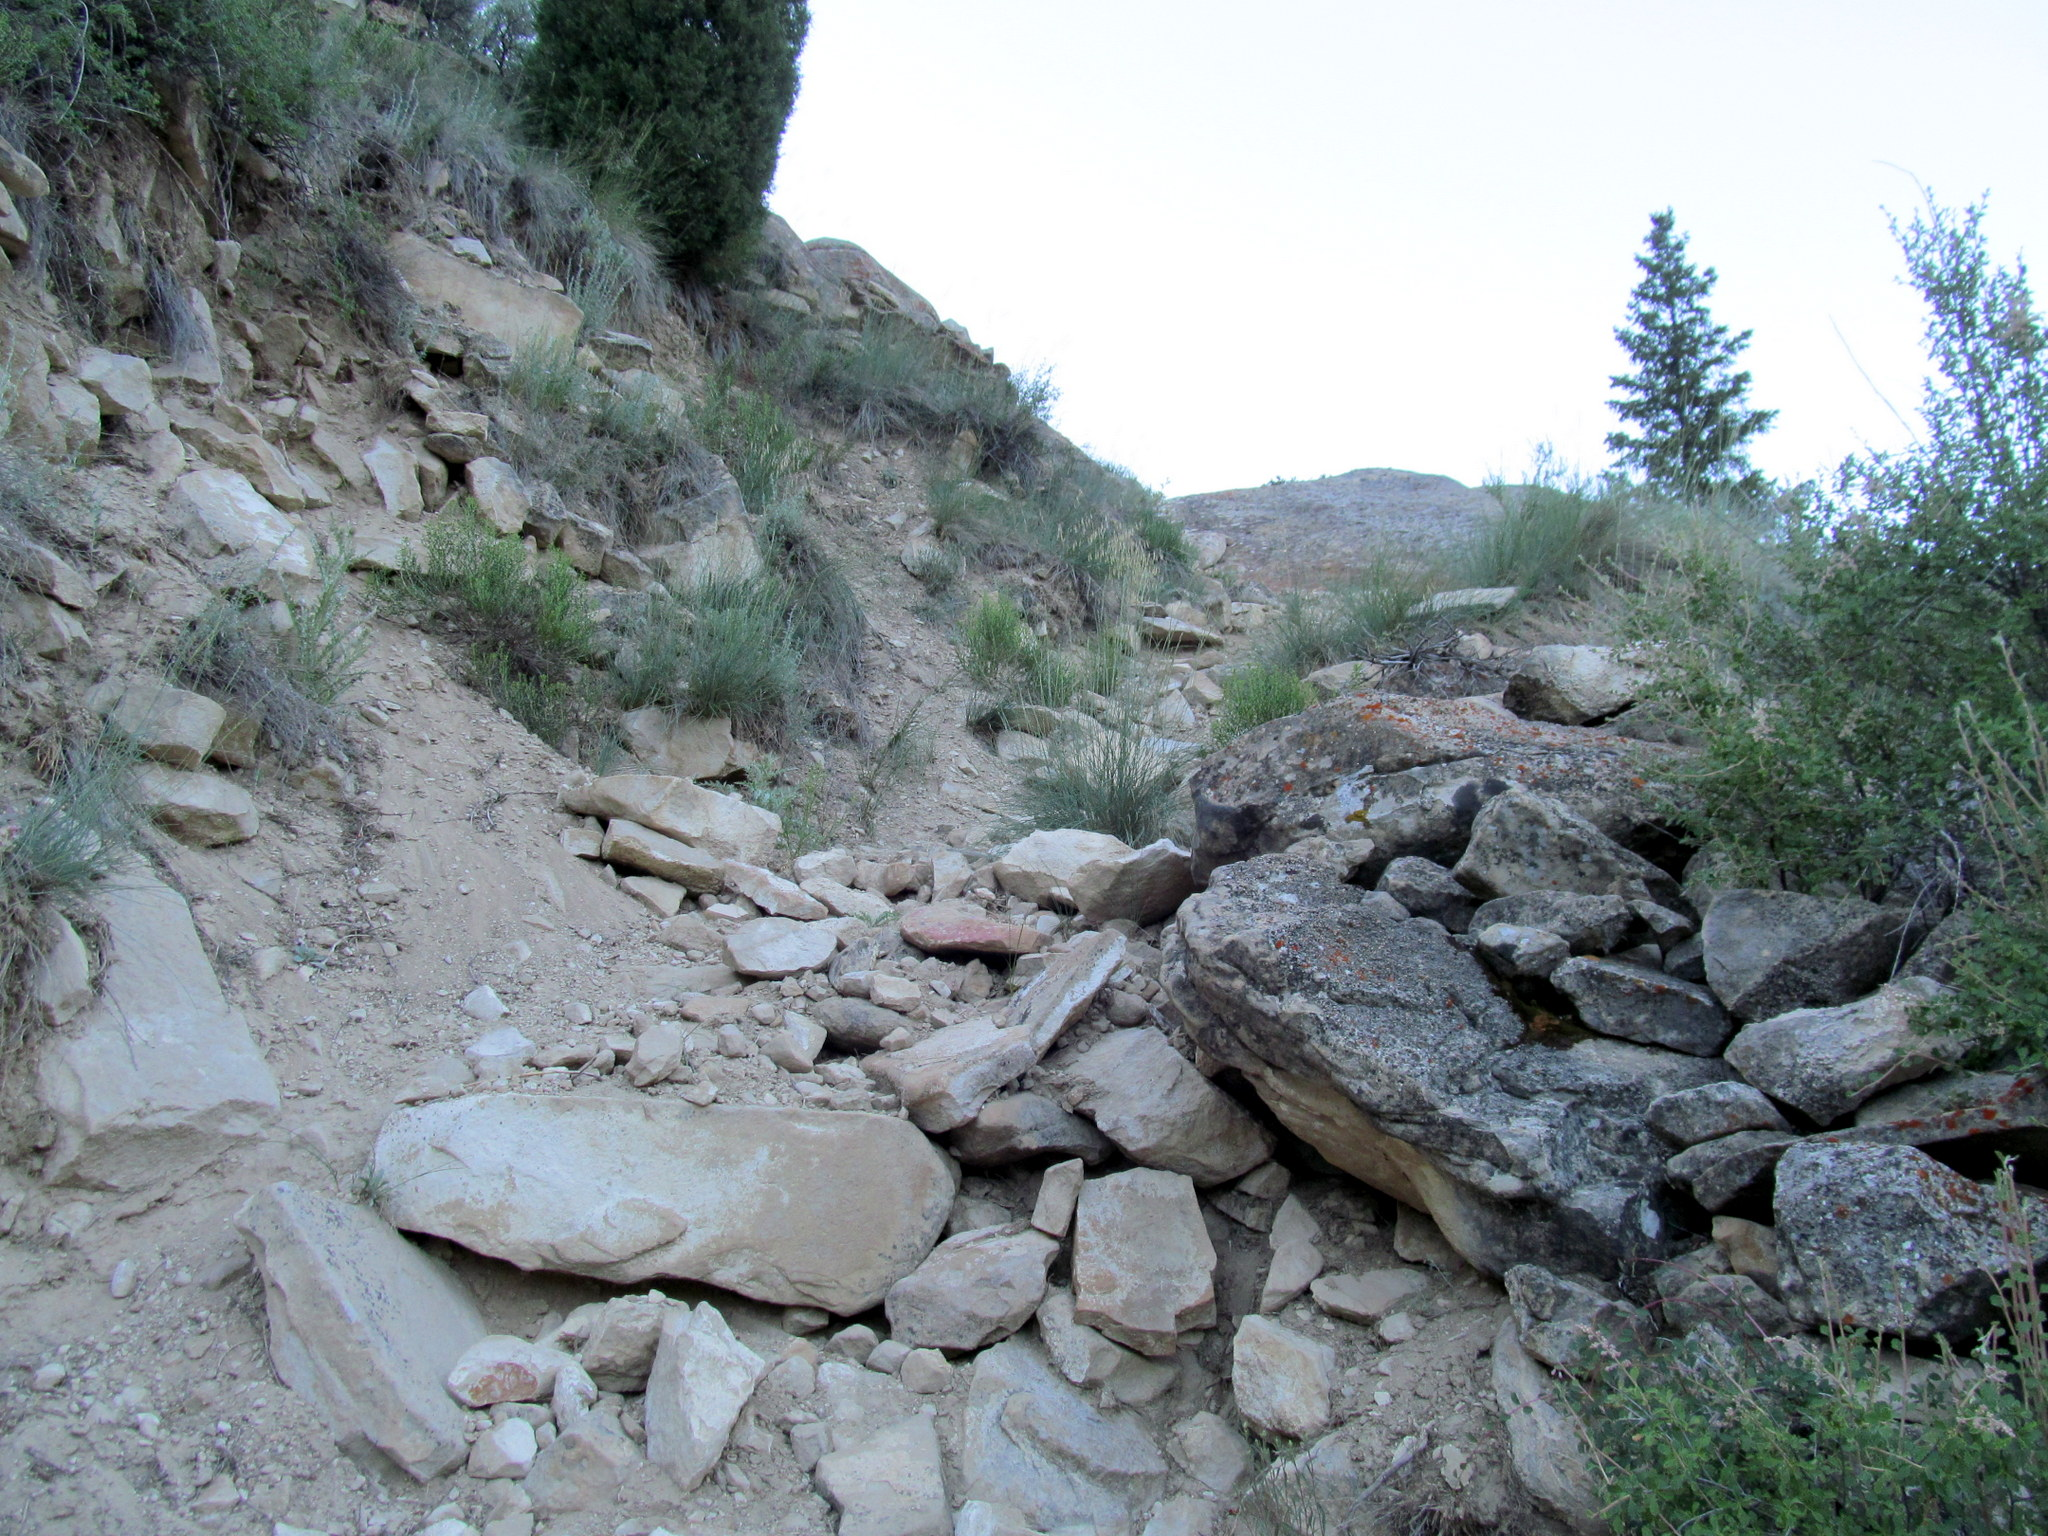 Photo: Rocky section of trail